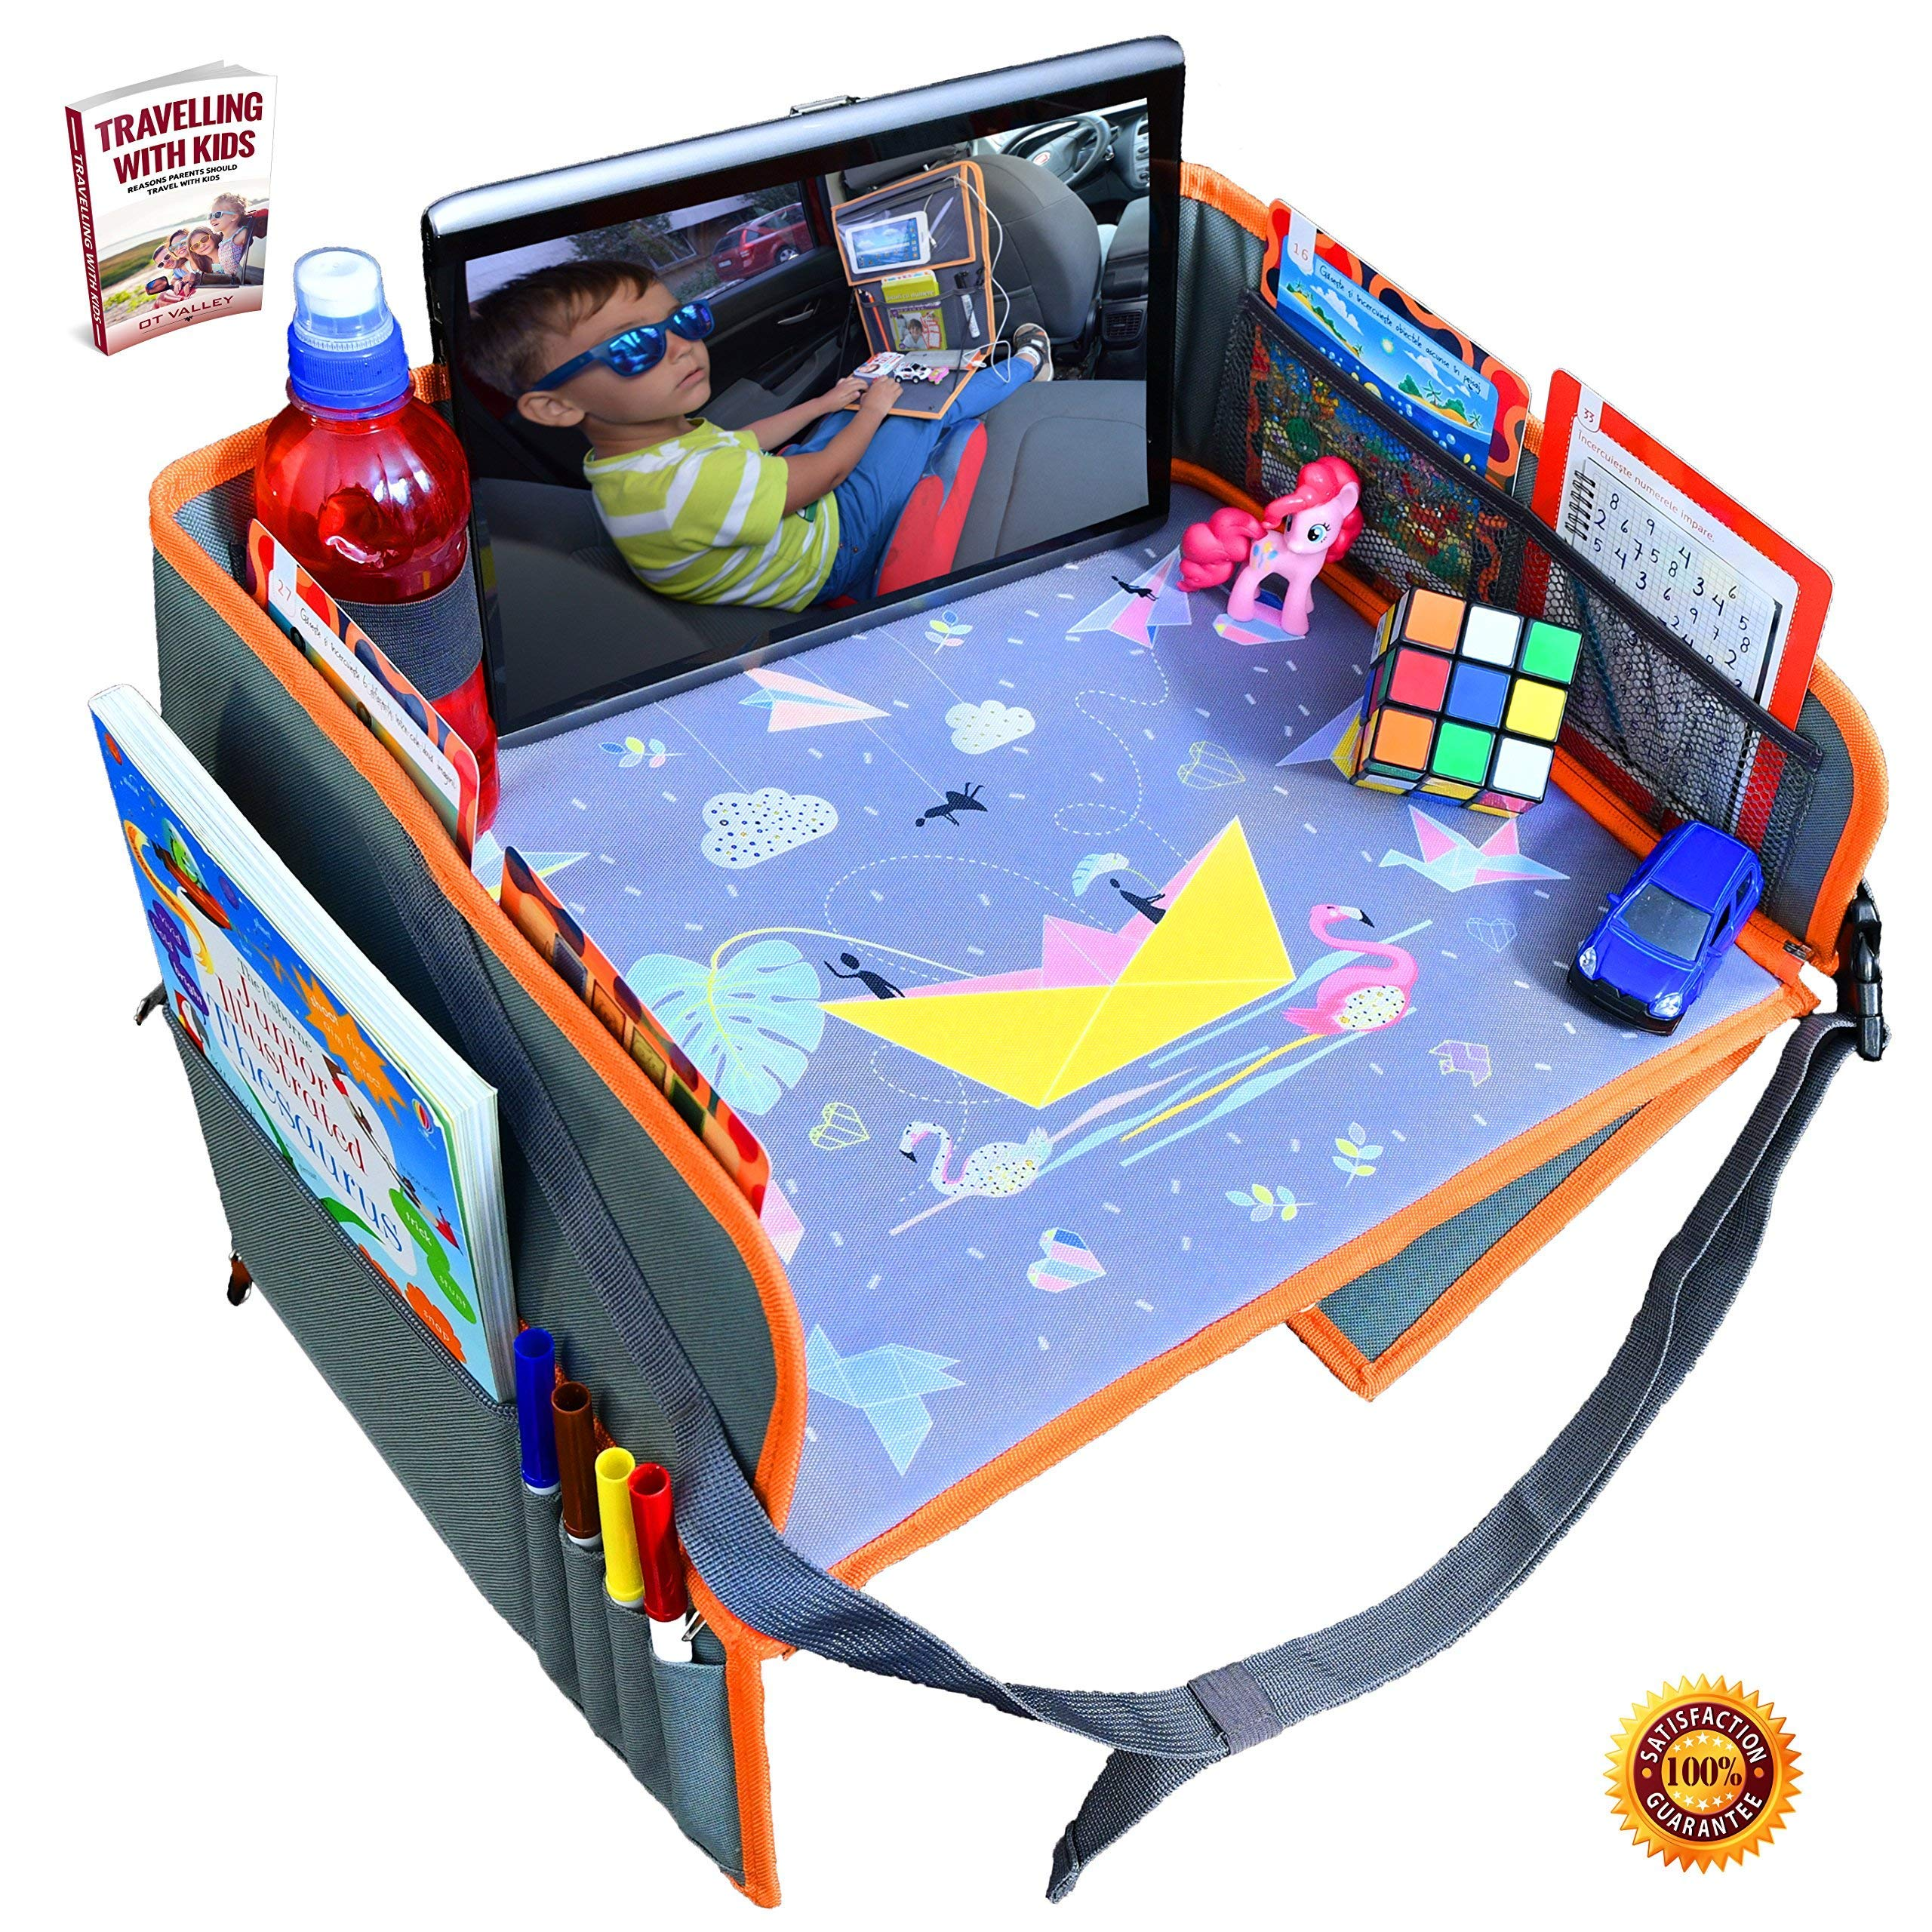 Car Seat Lap Travel Tray For Children By OT Valley